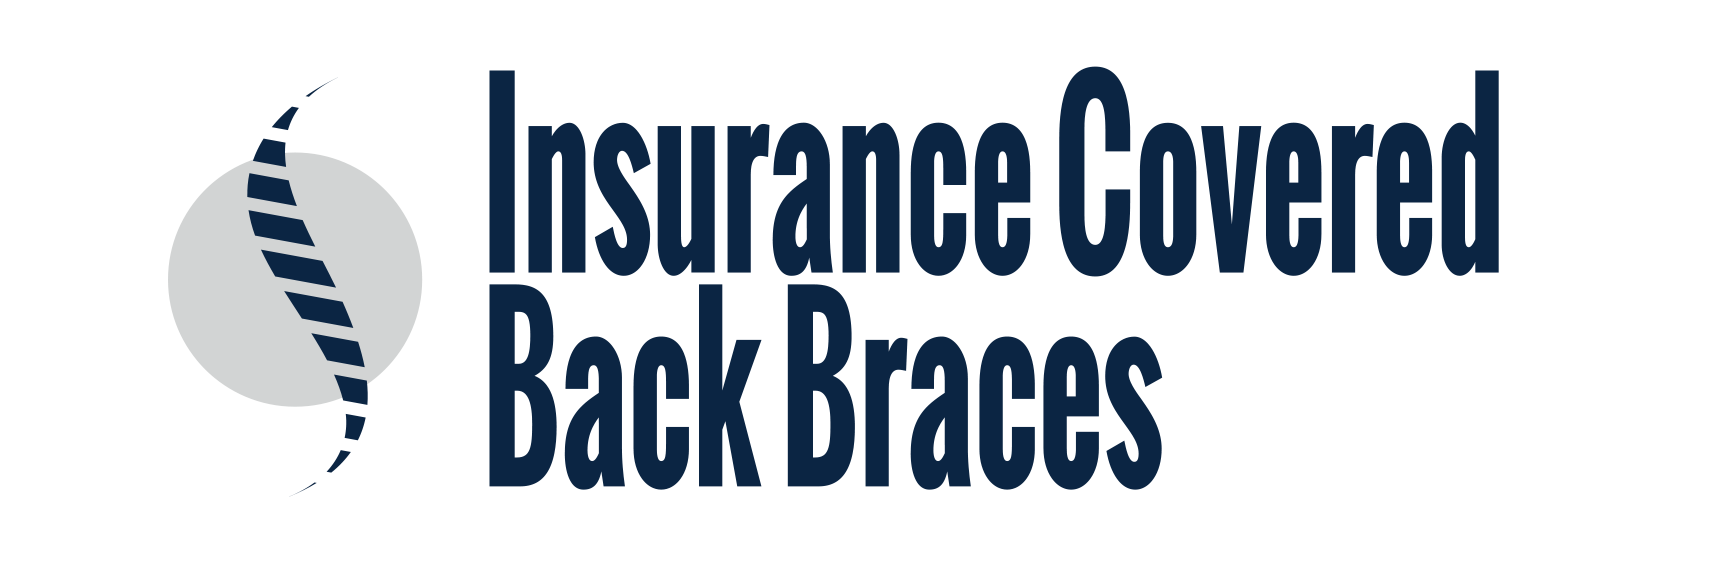 InsuranceCoveredBackBraces.com Logo